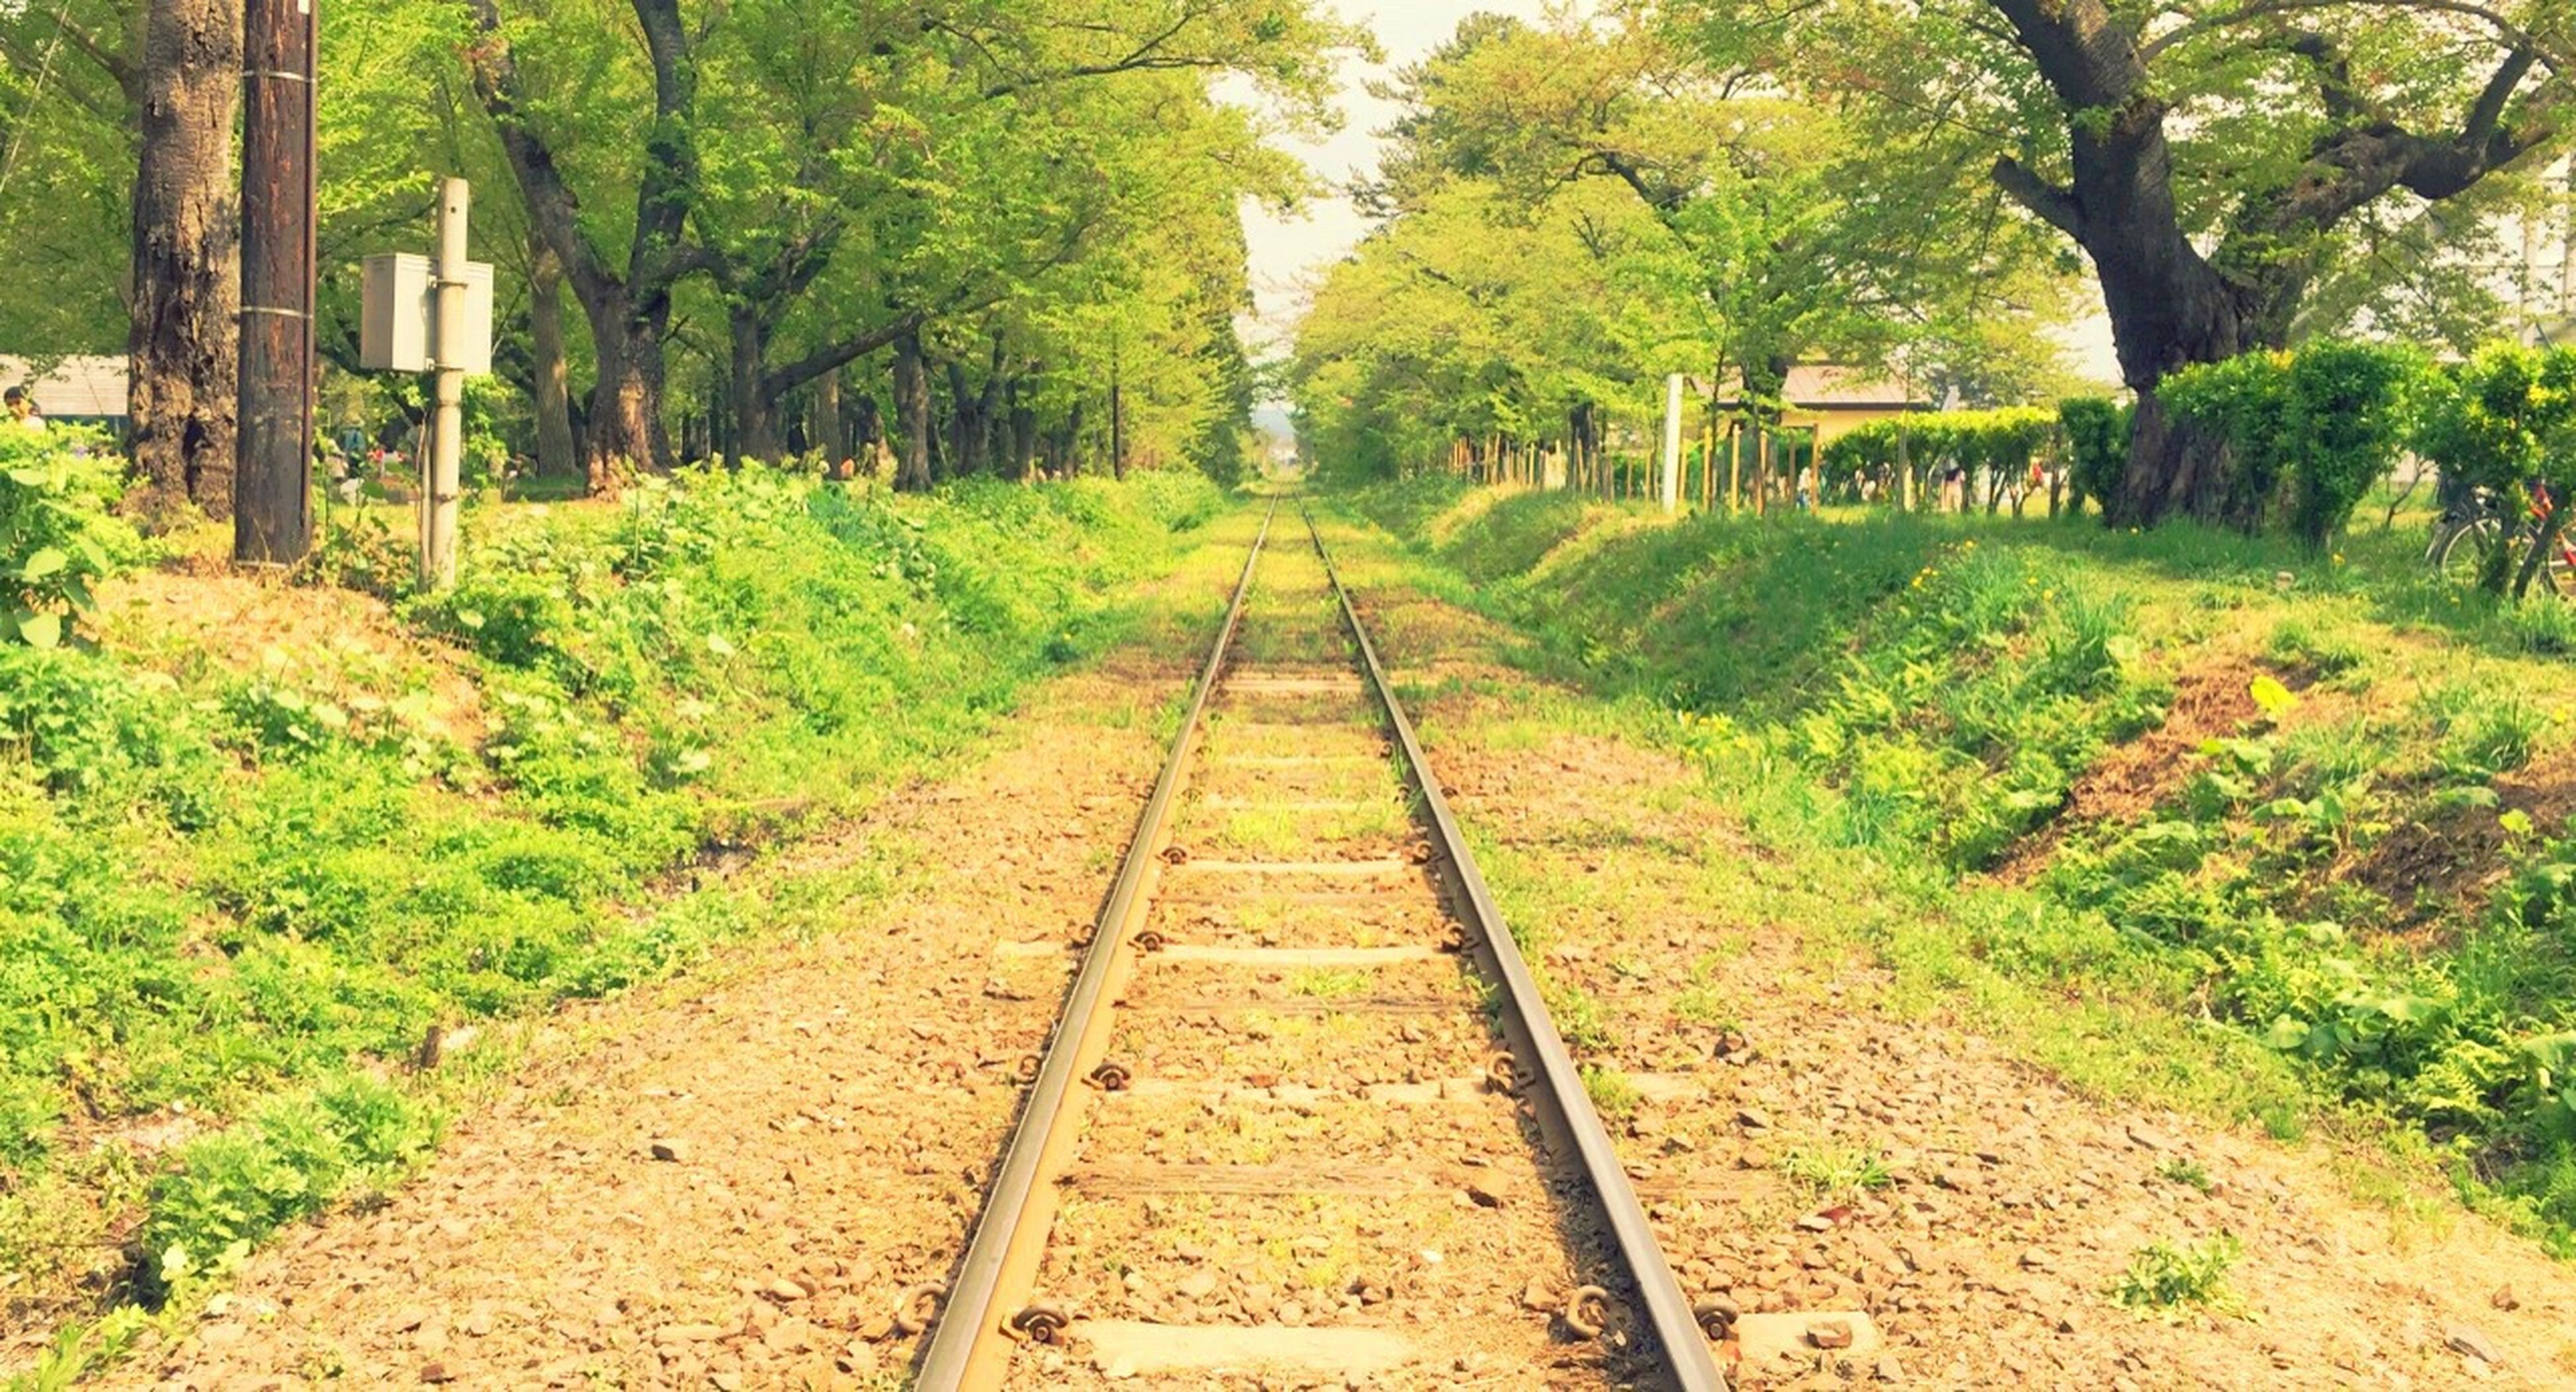 tree, the way forward, green color, diminishing perspective, growth, vanishing point, transportation, tranquility, nature, grass, tranquil scene, railroad track, plant, day, footpath, outdoors, no people, lush foliage, forest, beauty in nature